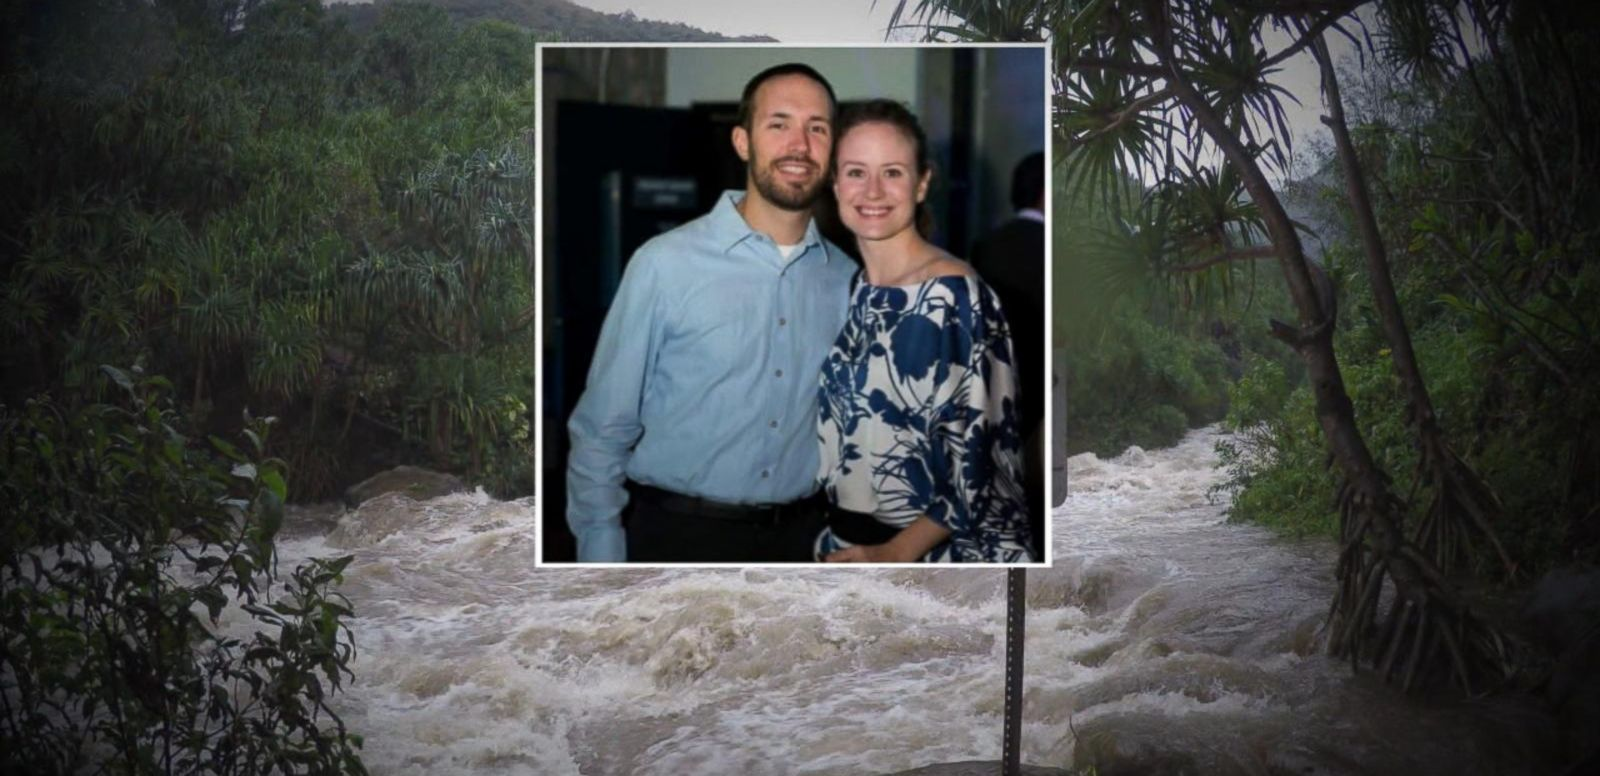 VIDEO: Trapped Hikers in Hawaii Rescued From Raging Waters